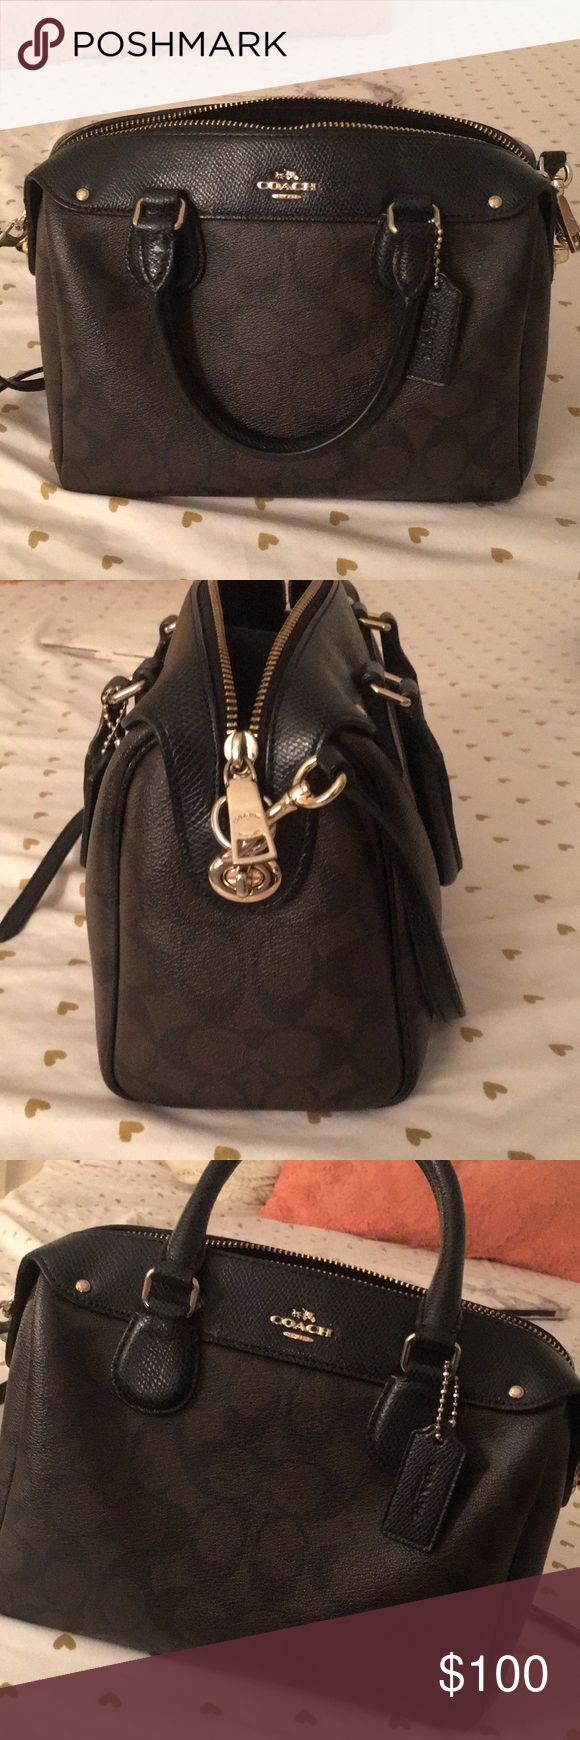 Mini crossover Long strap included perfect condition Coach Bags Mini Bags